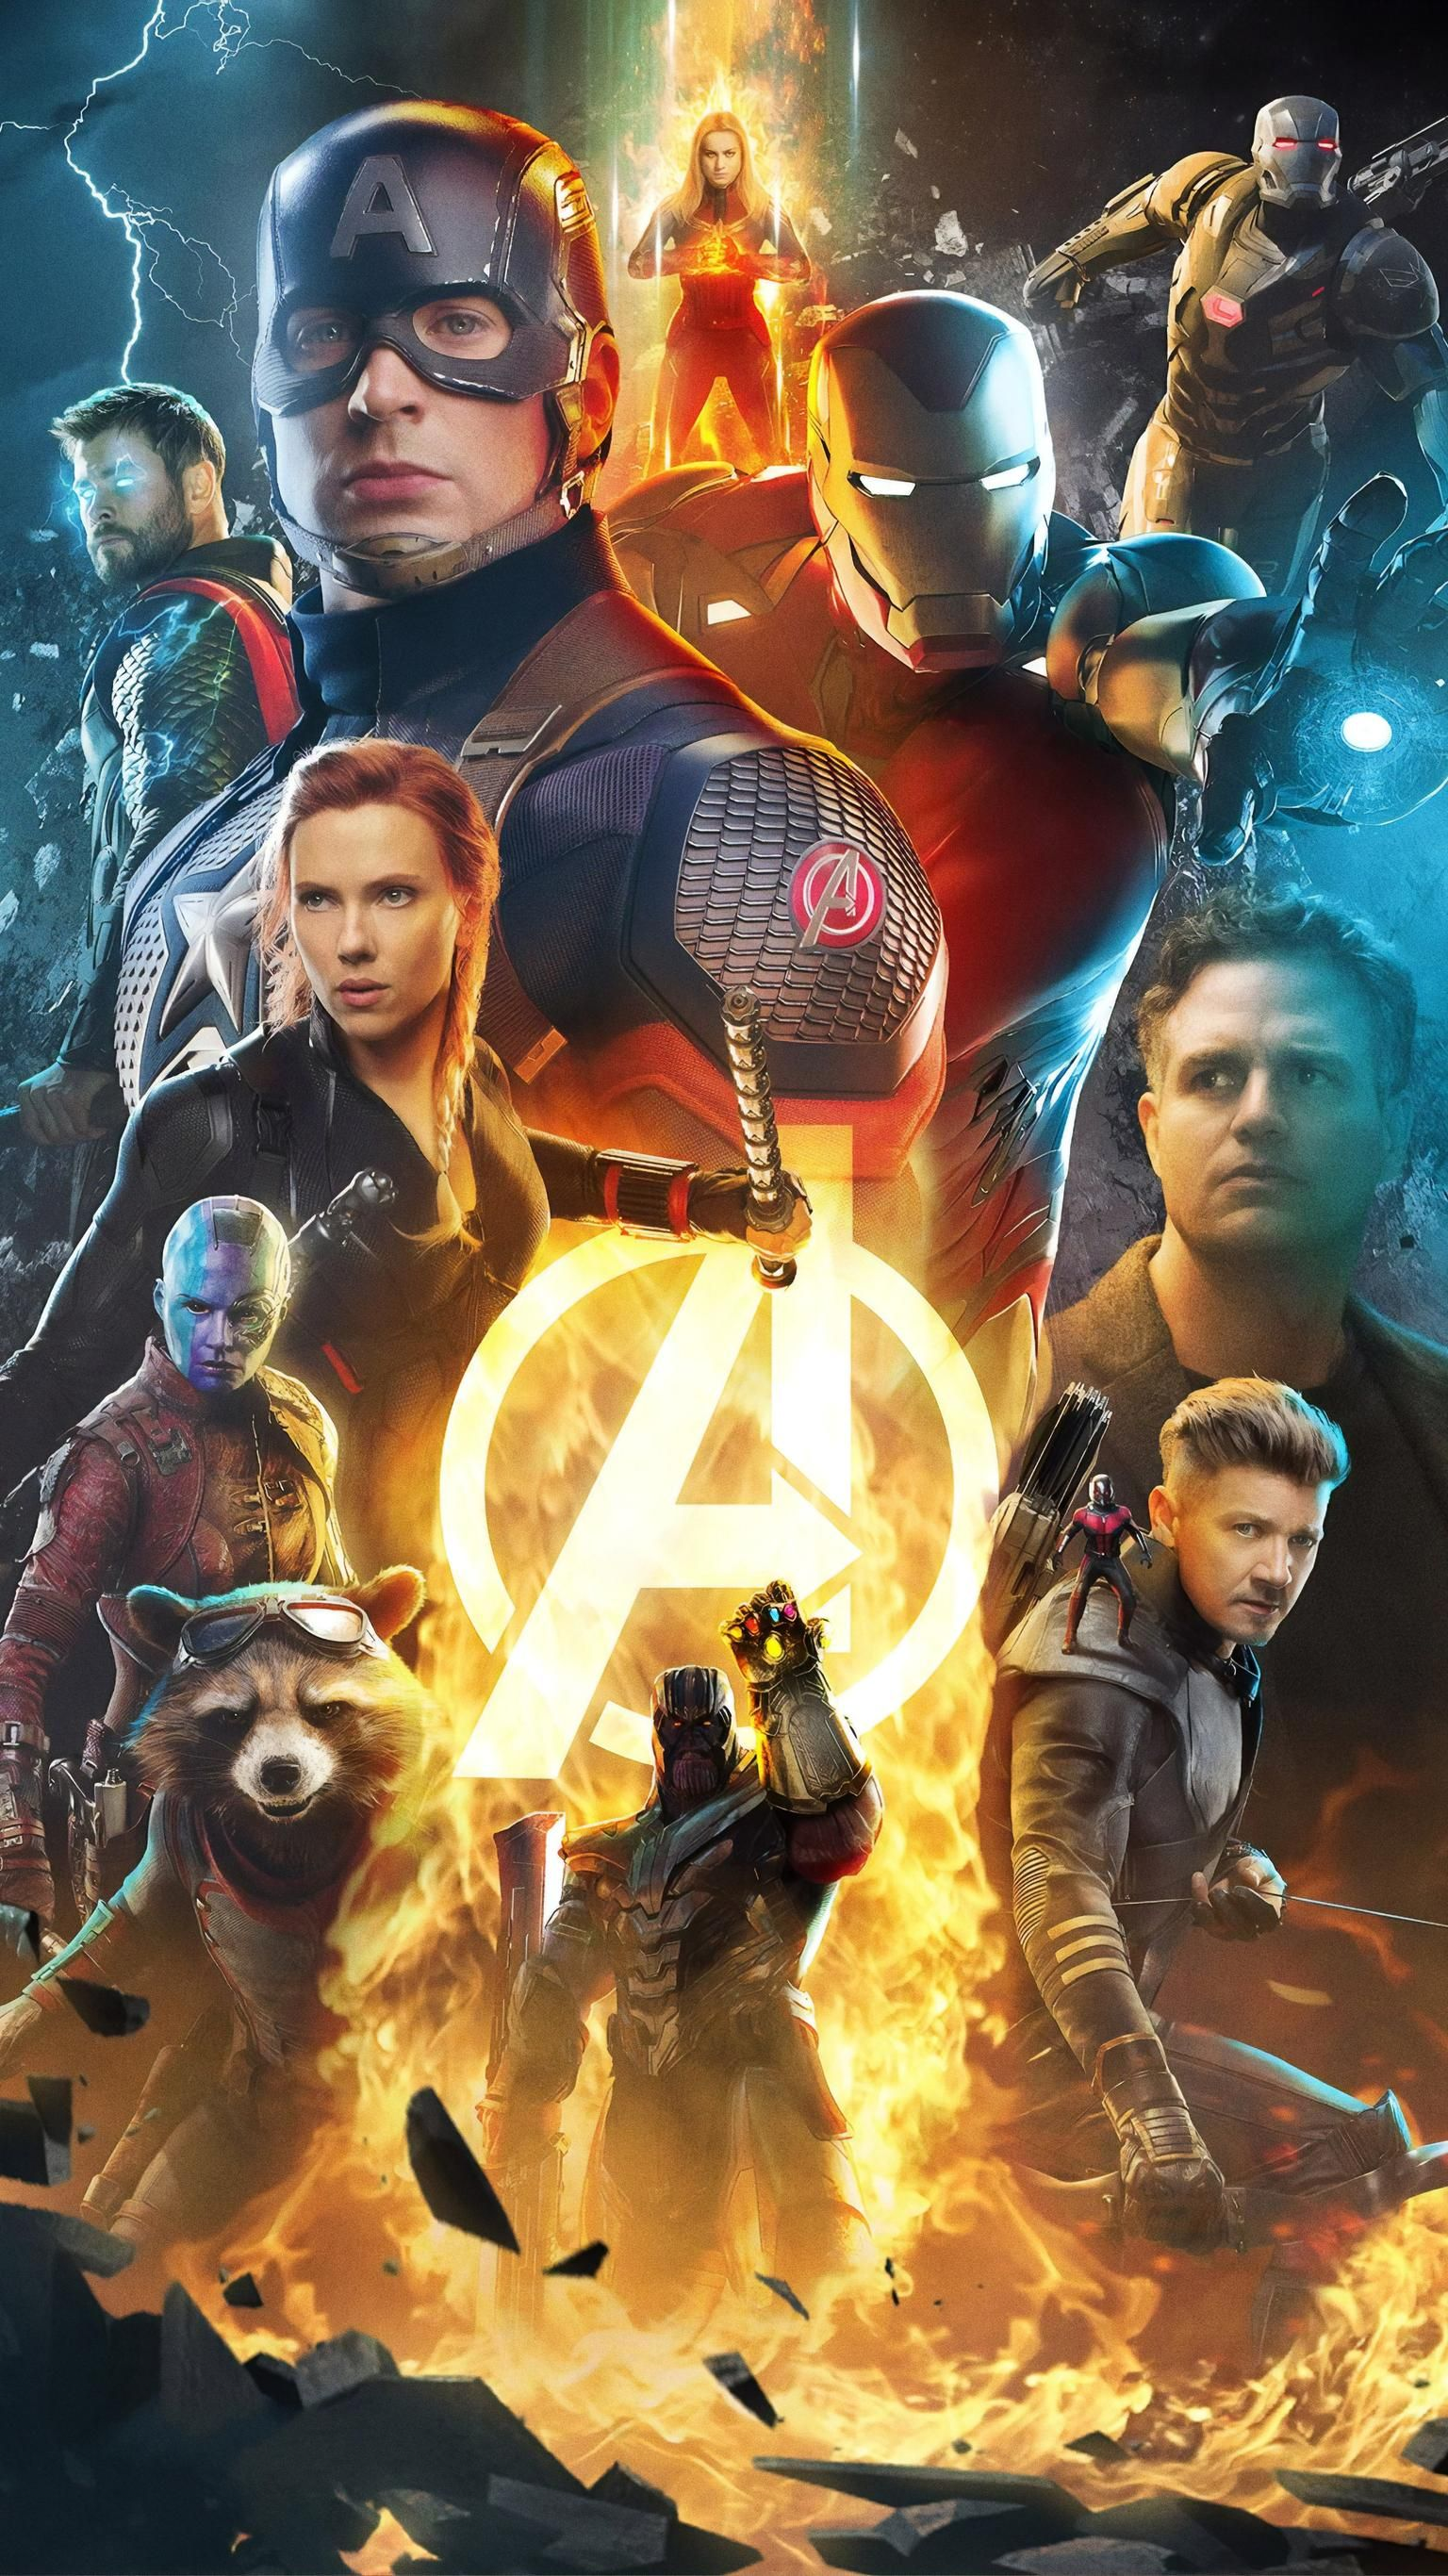 Avengers Endgame (2019) Phone Wallpaper Marvel